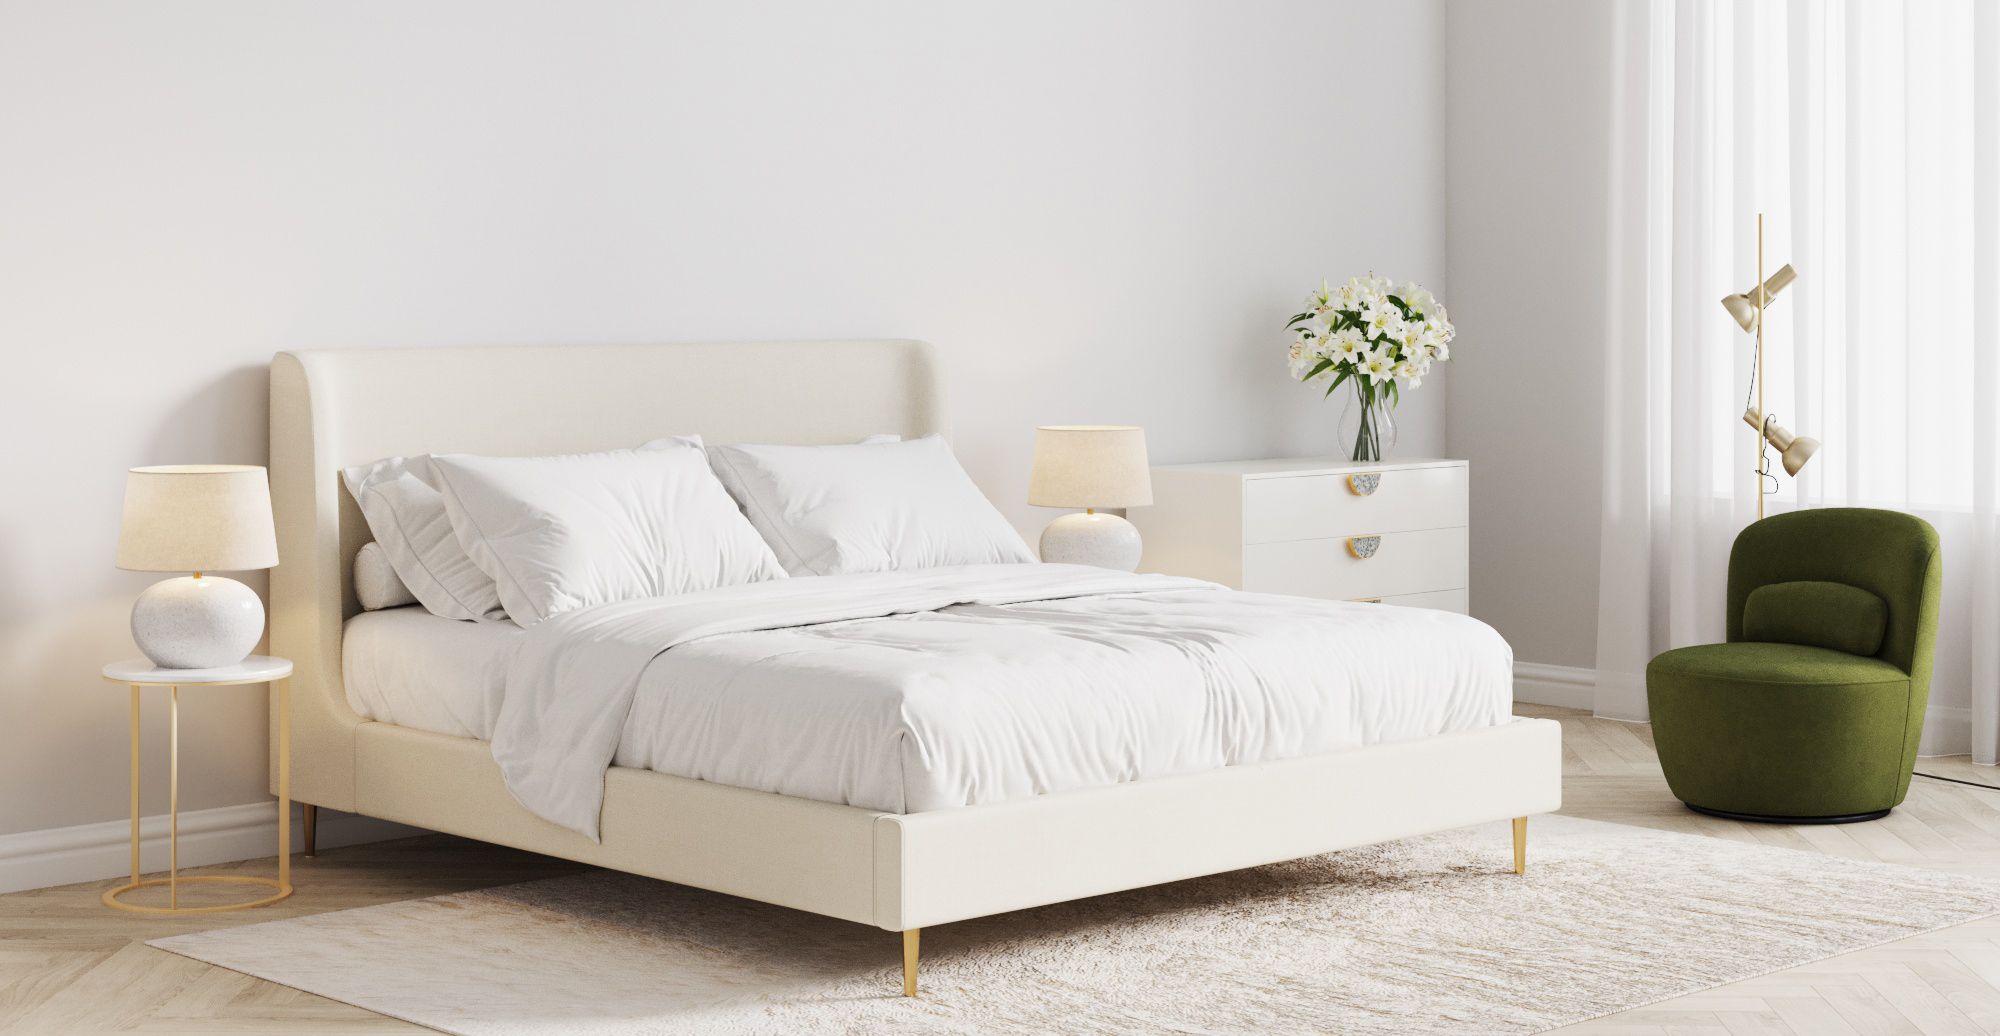 Brosa Gia King Size Bed Frame styled in coastal bedroom